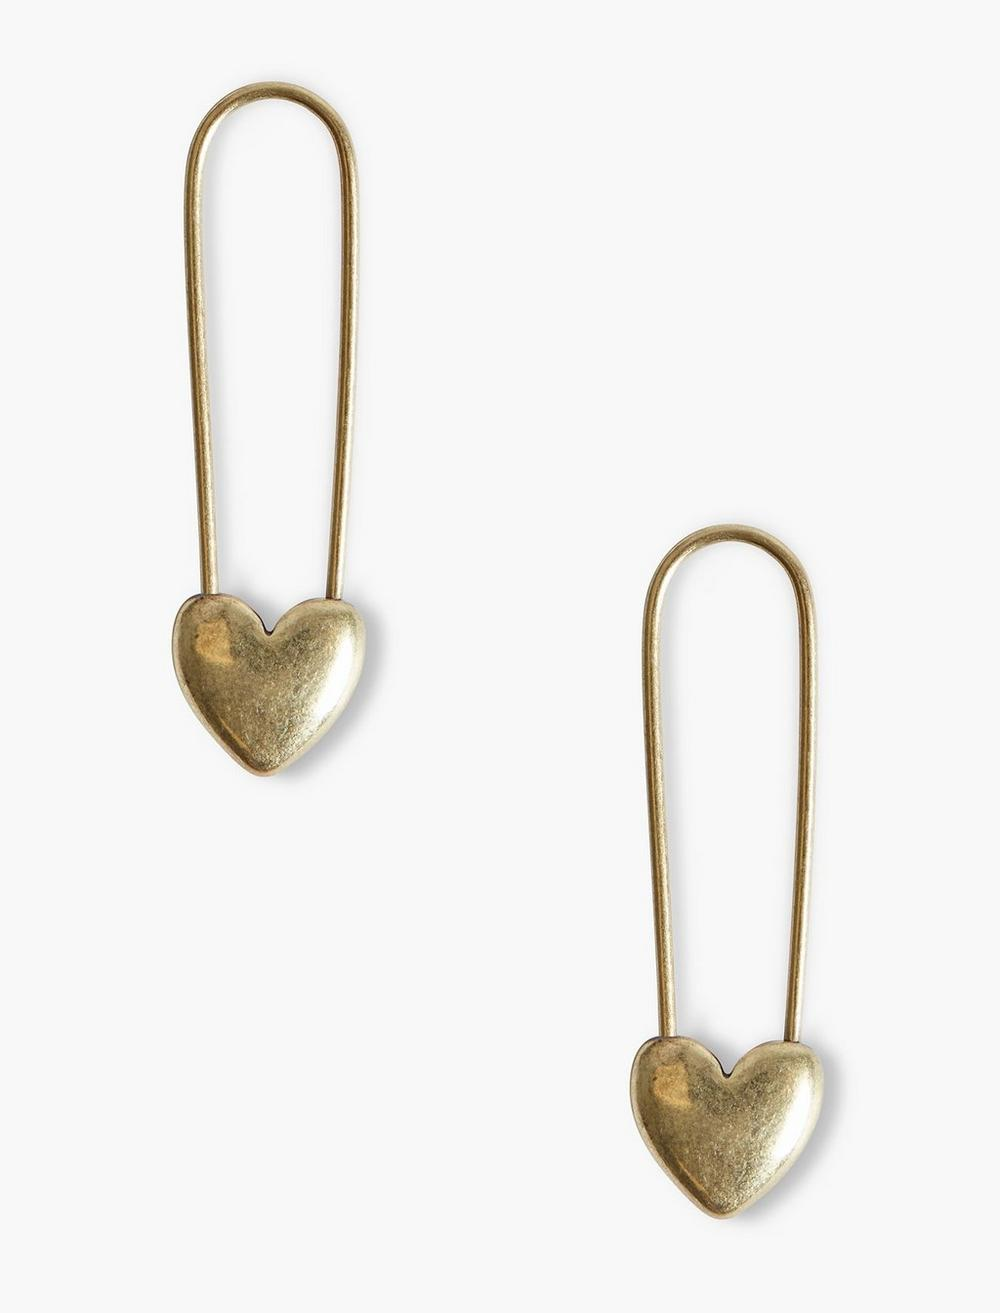 GOLD SAFETY PIN HEART EARRINGS, image 1